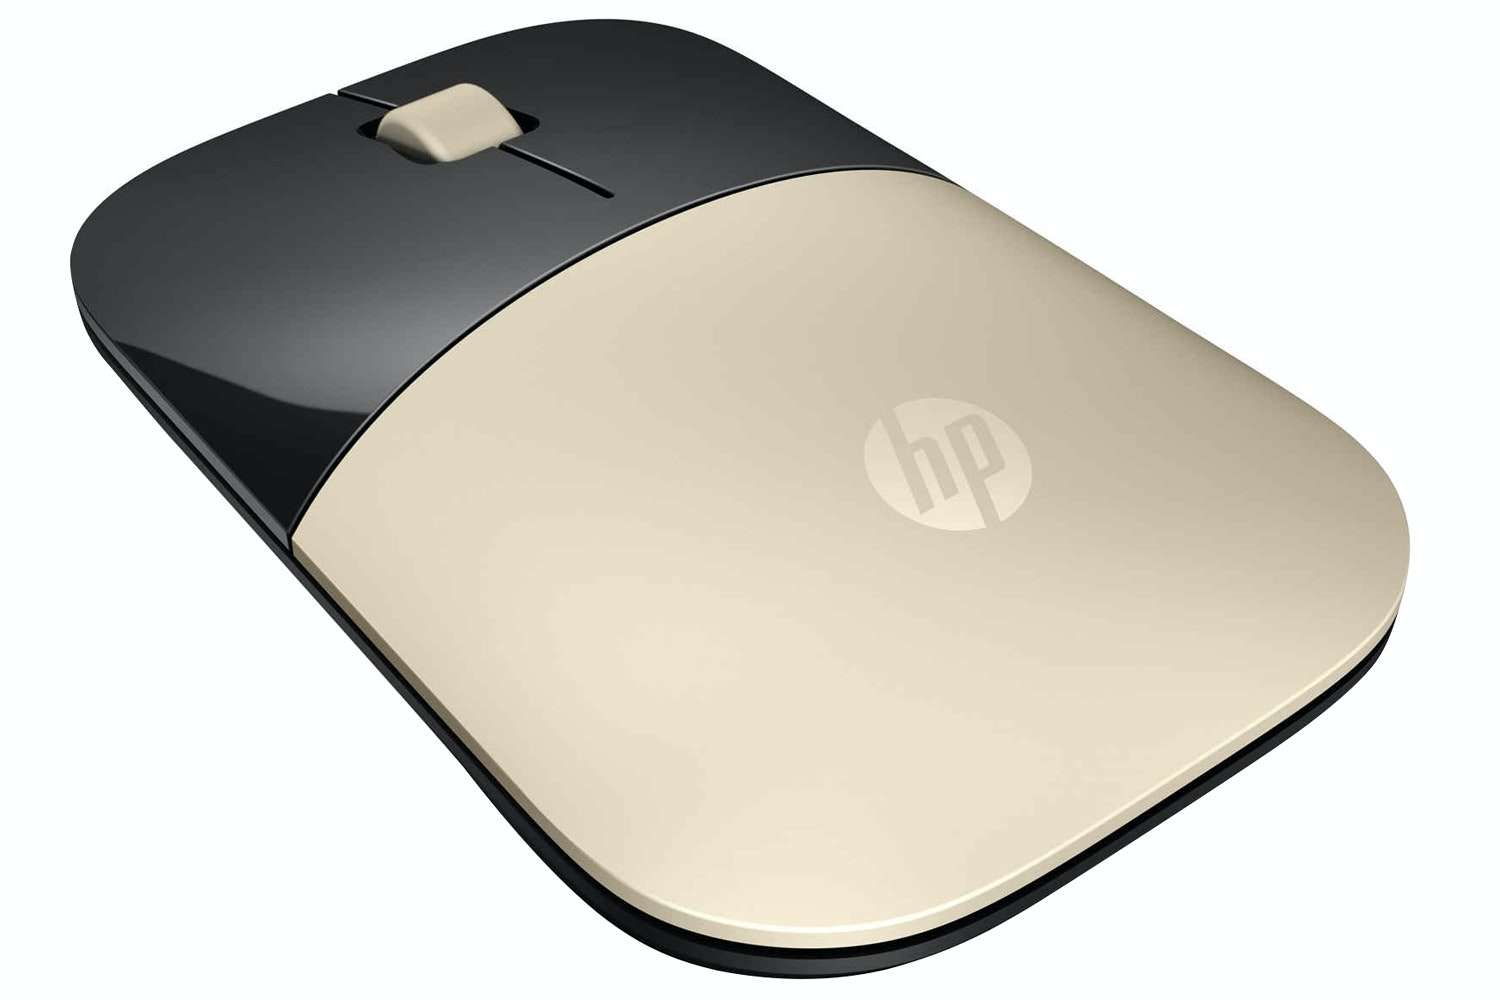 HP Z3700 Wireless Mouse | Gold